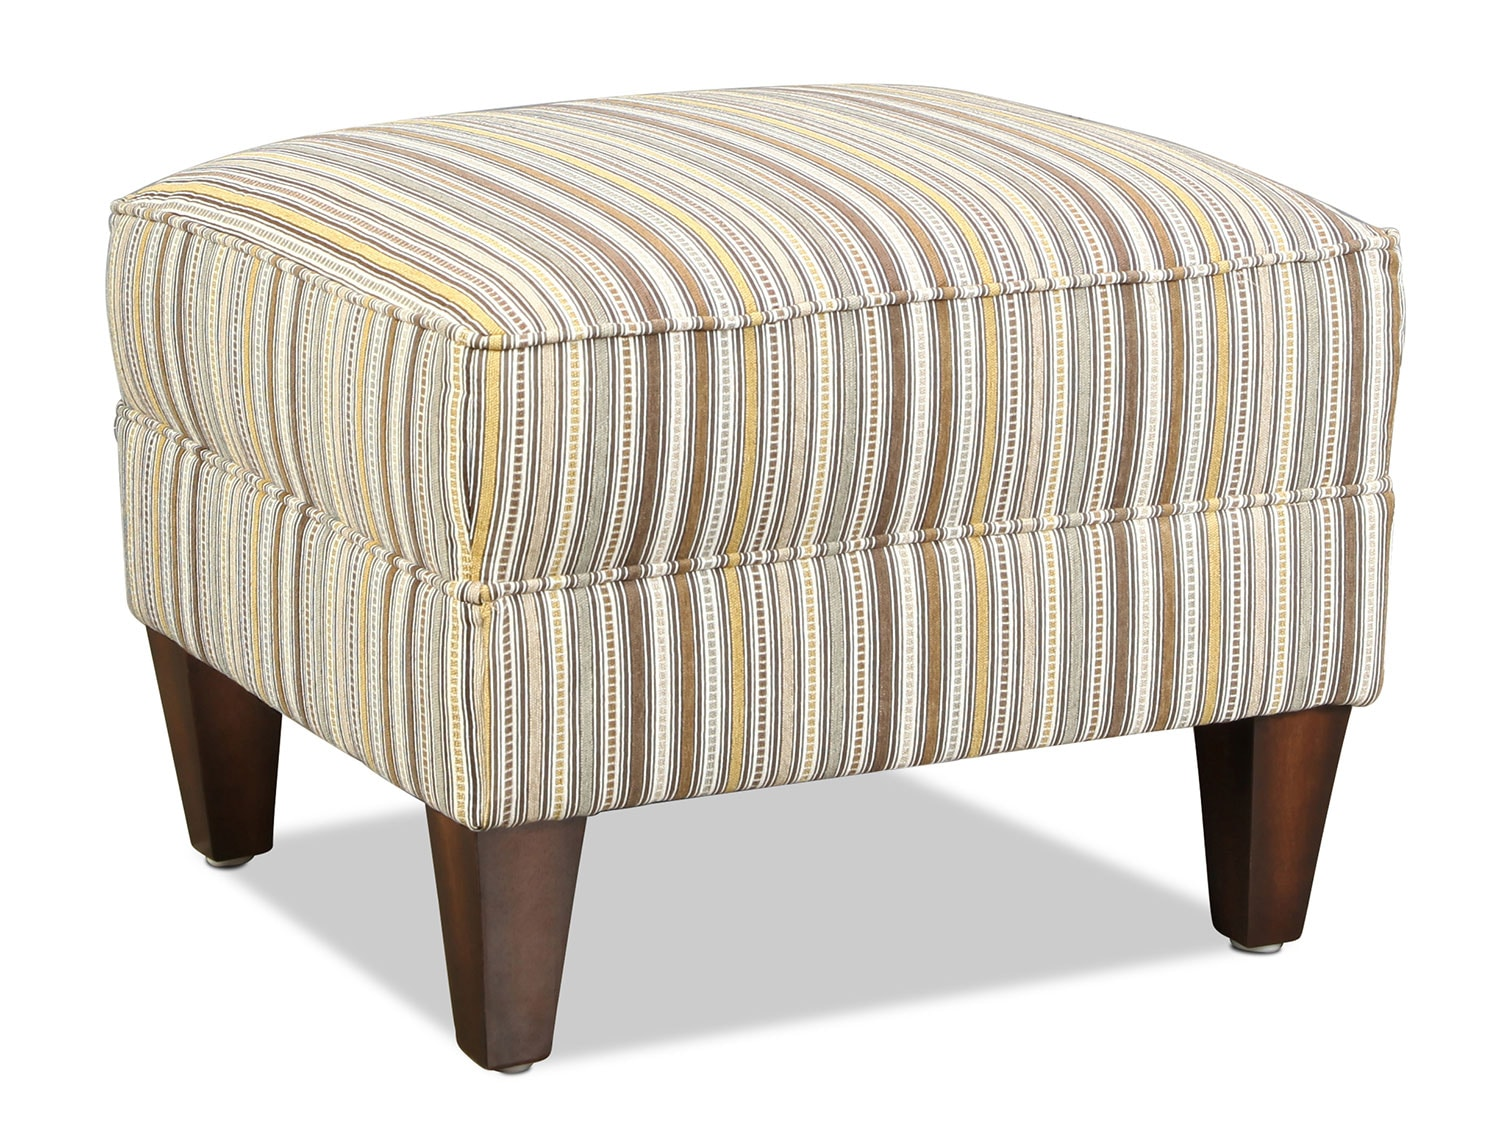 Lonsdale Accent Ottoman - Striped